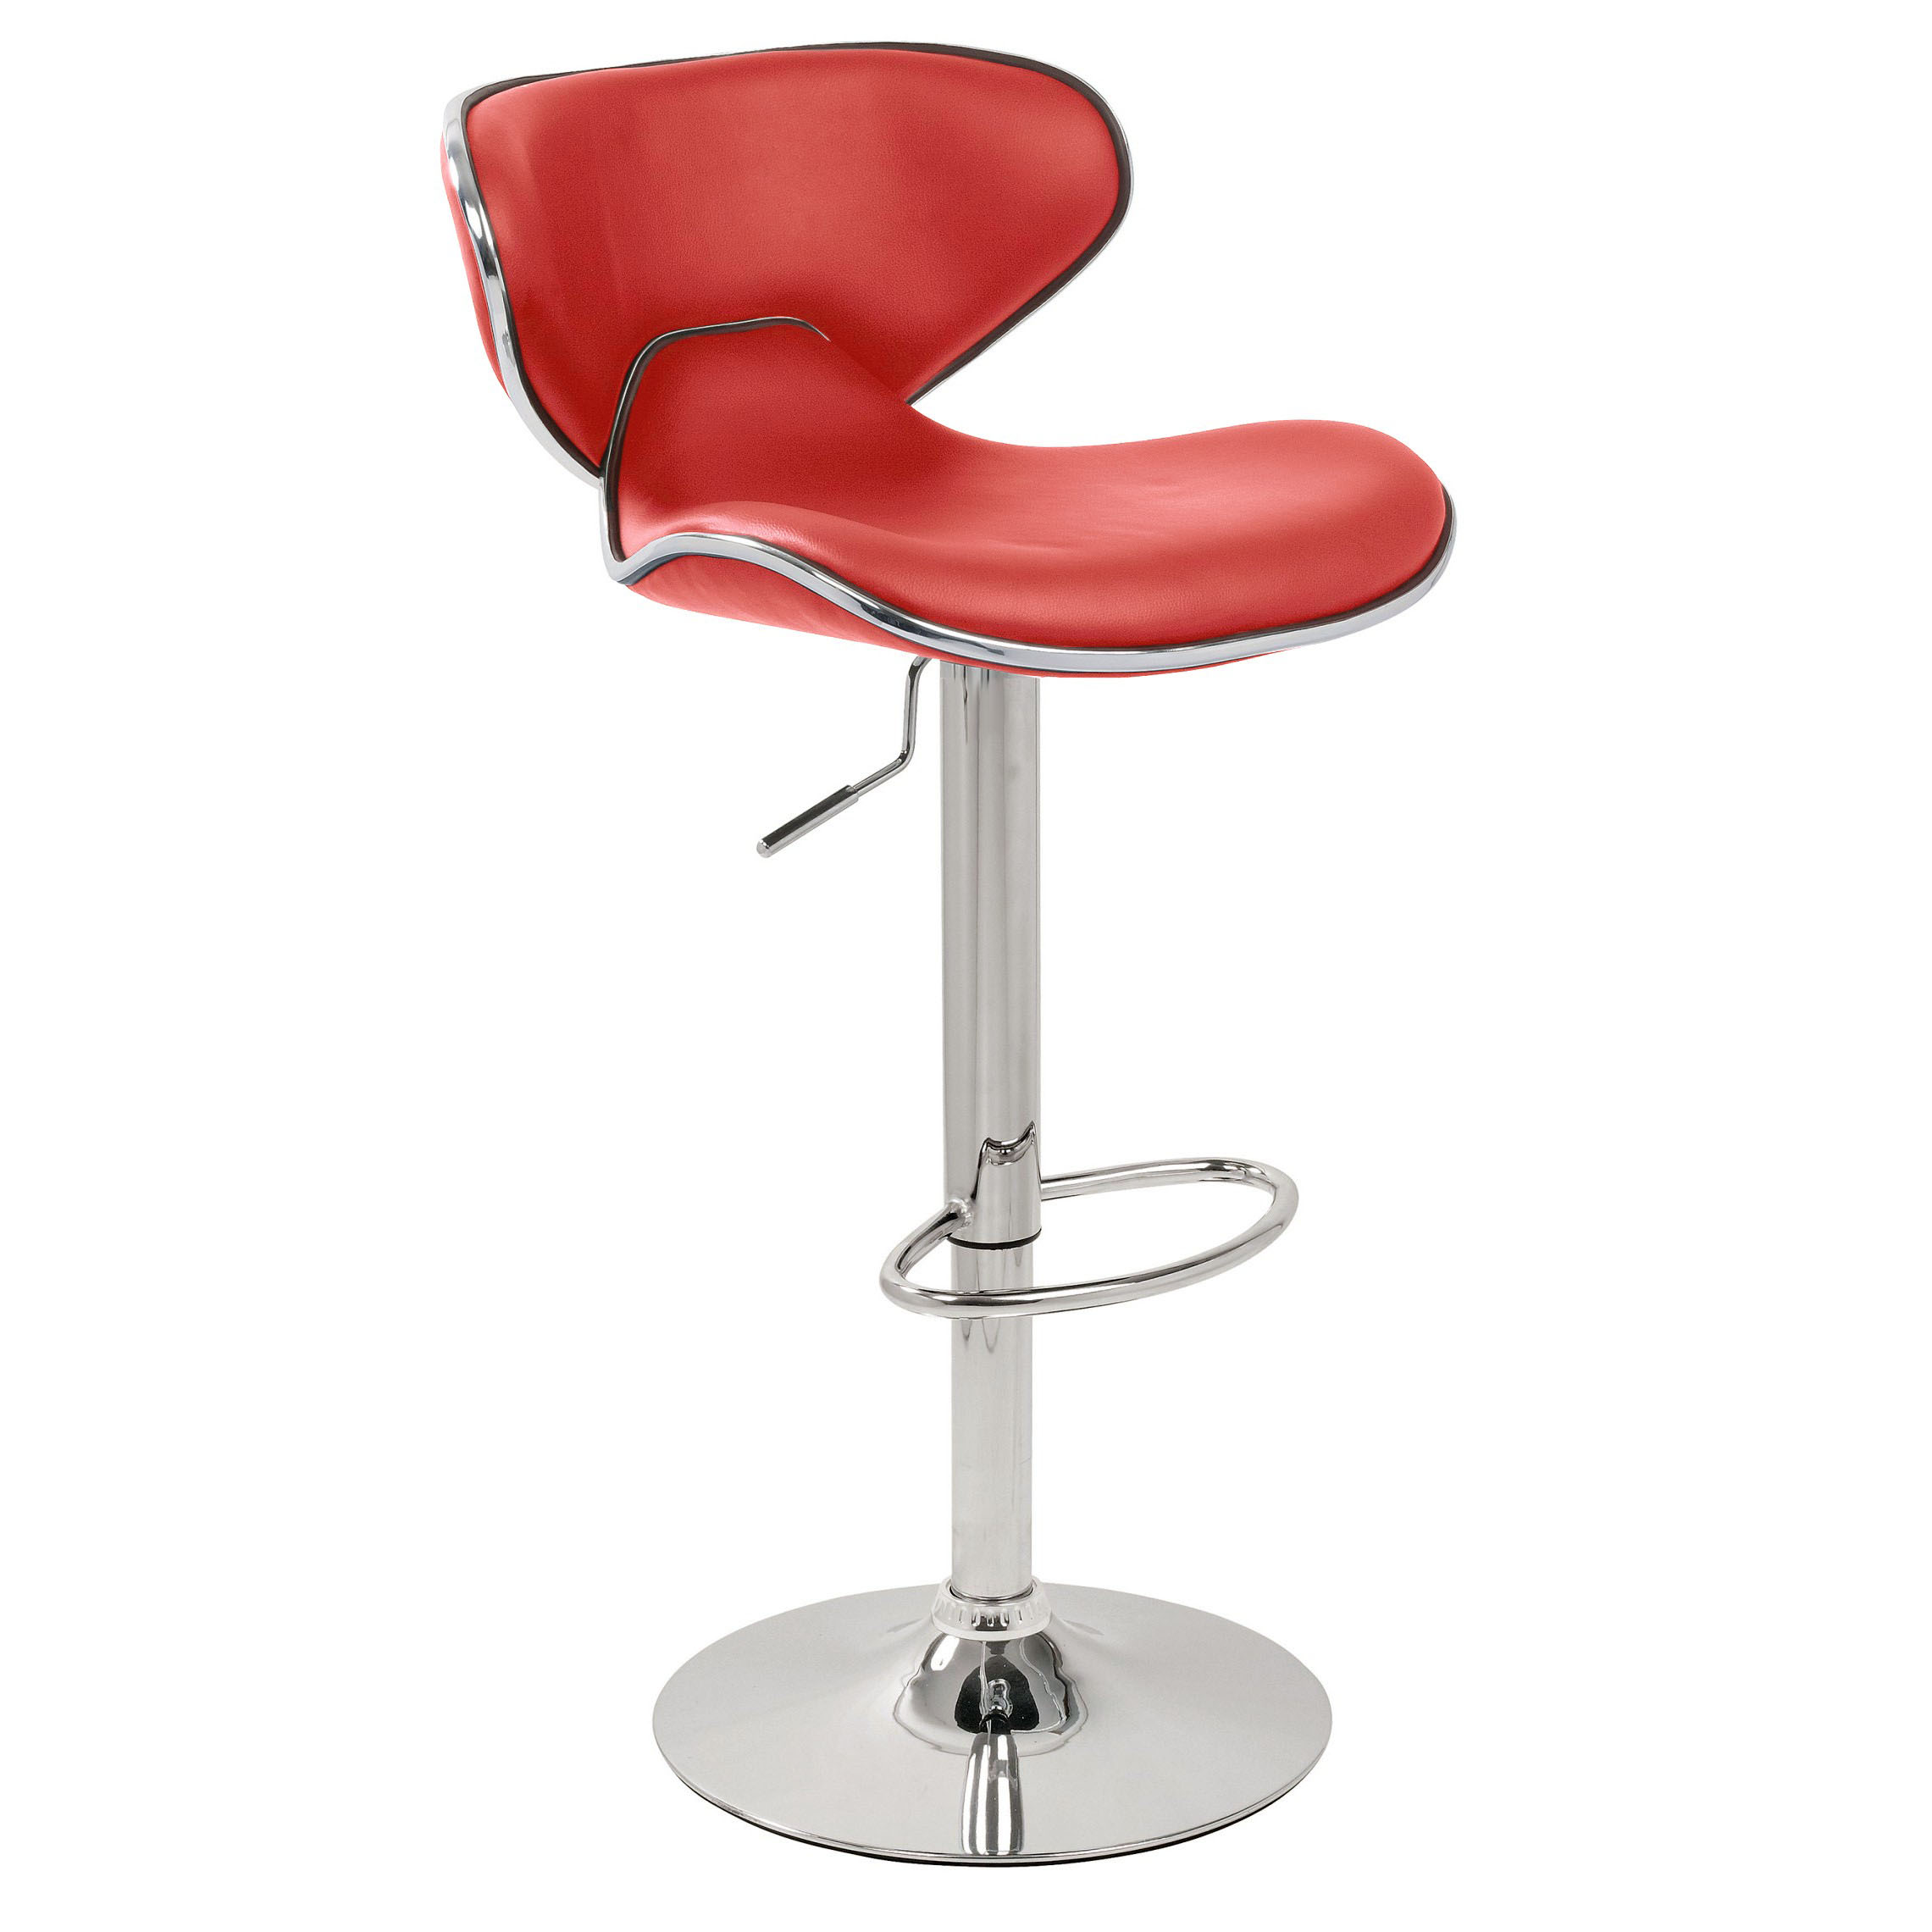 Carcaso Bar Stool - Red Product Image